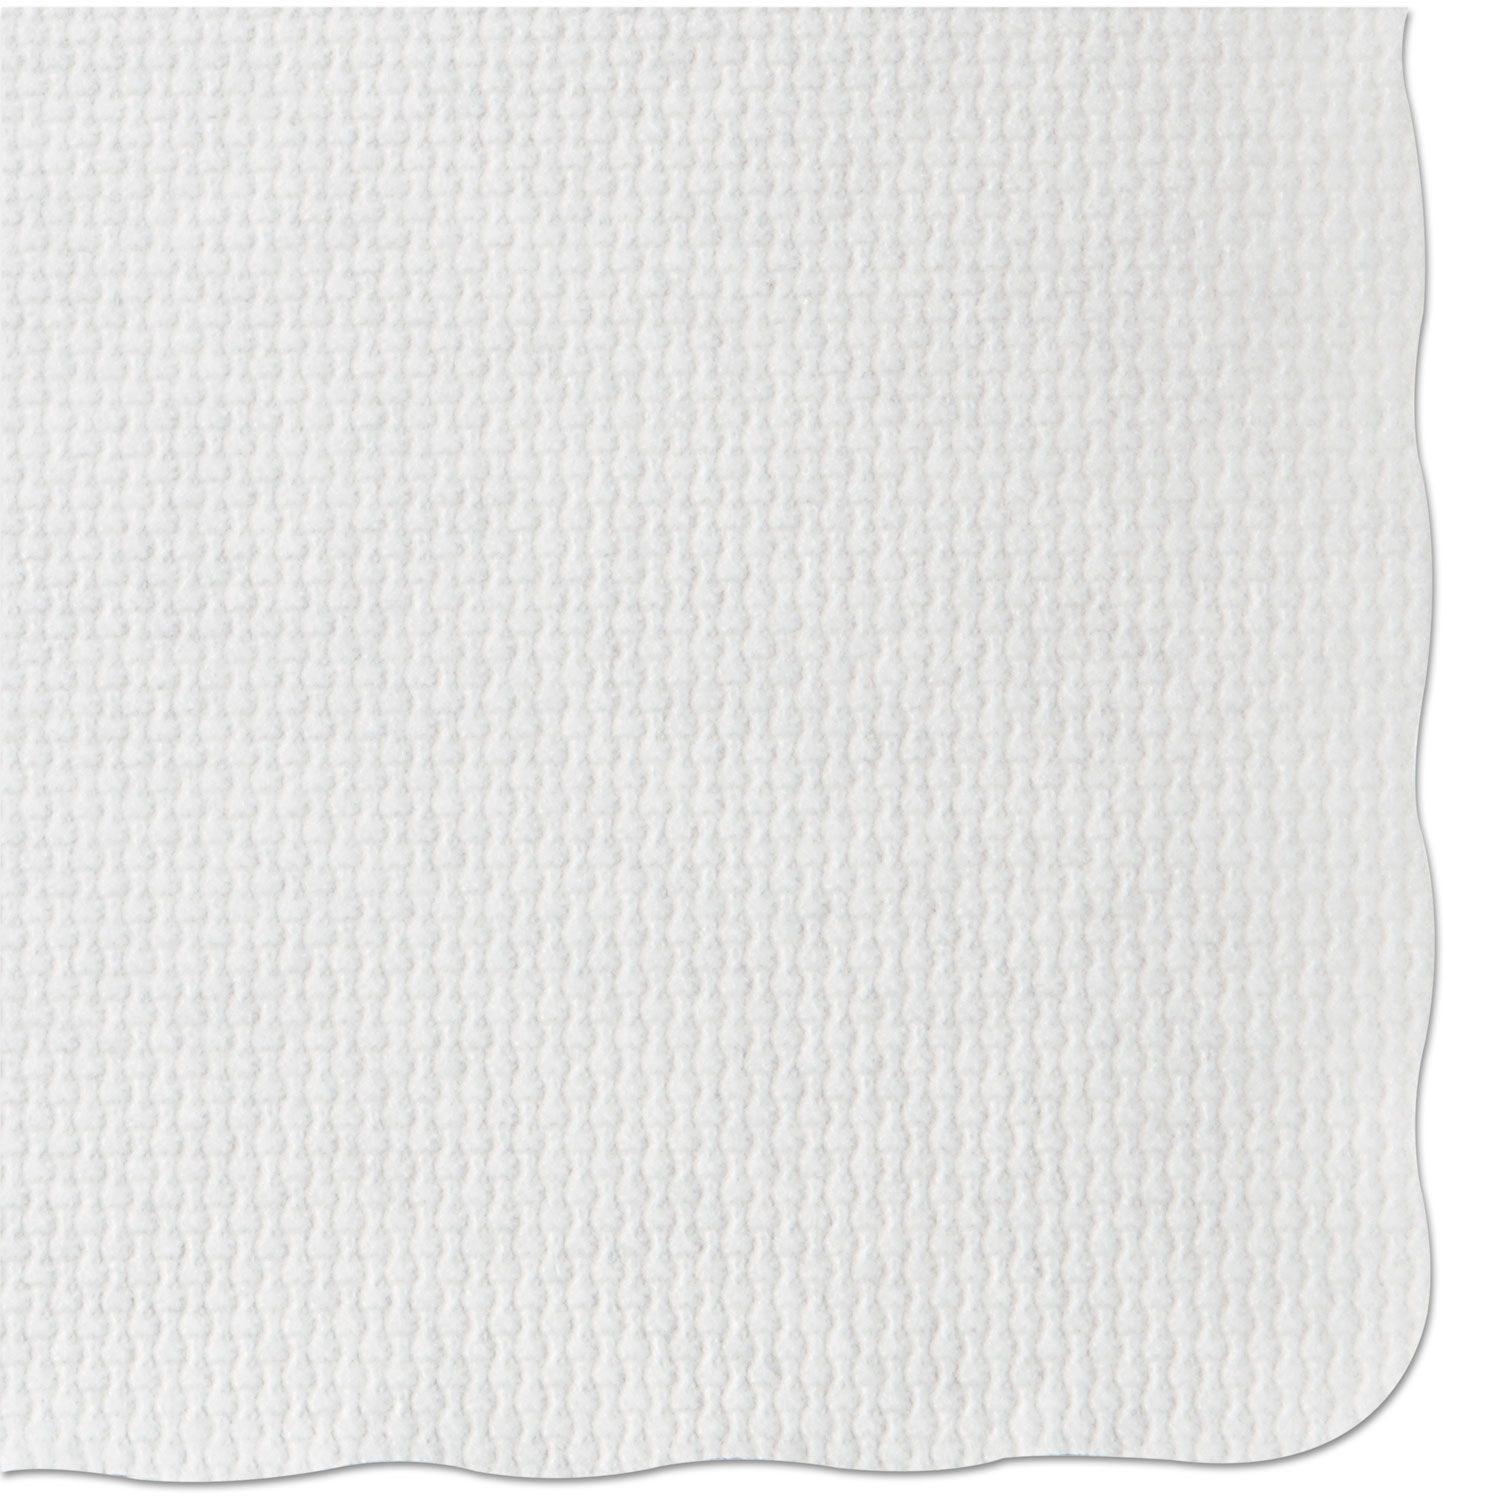 Knurl Embossed Scalloped Edge Placemats, 9.5 x 13.5, White, 1,000/Carton